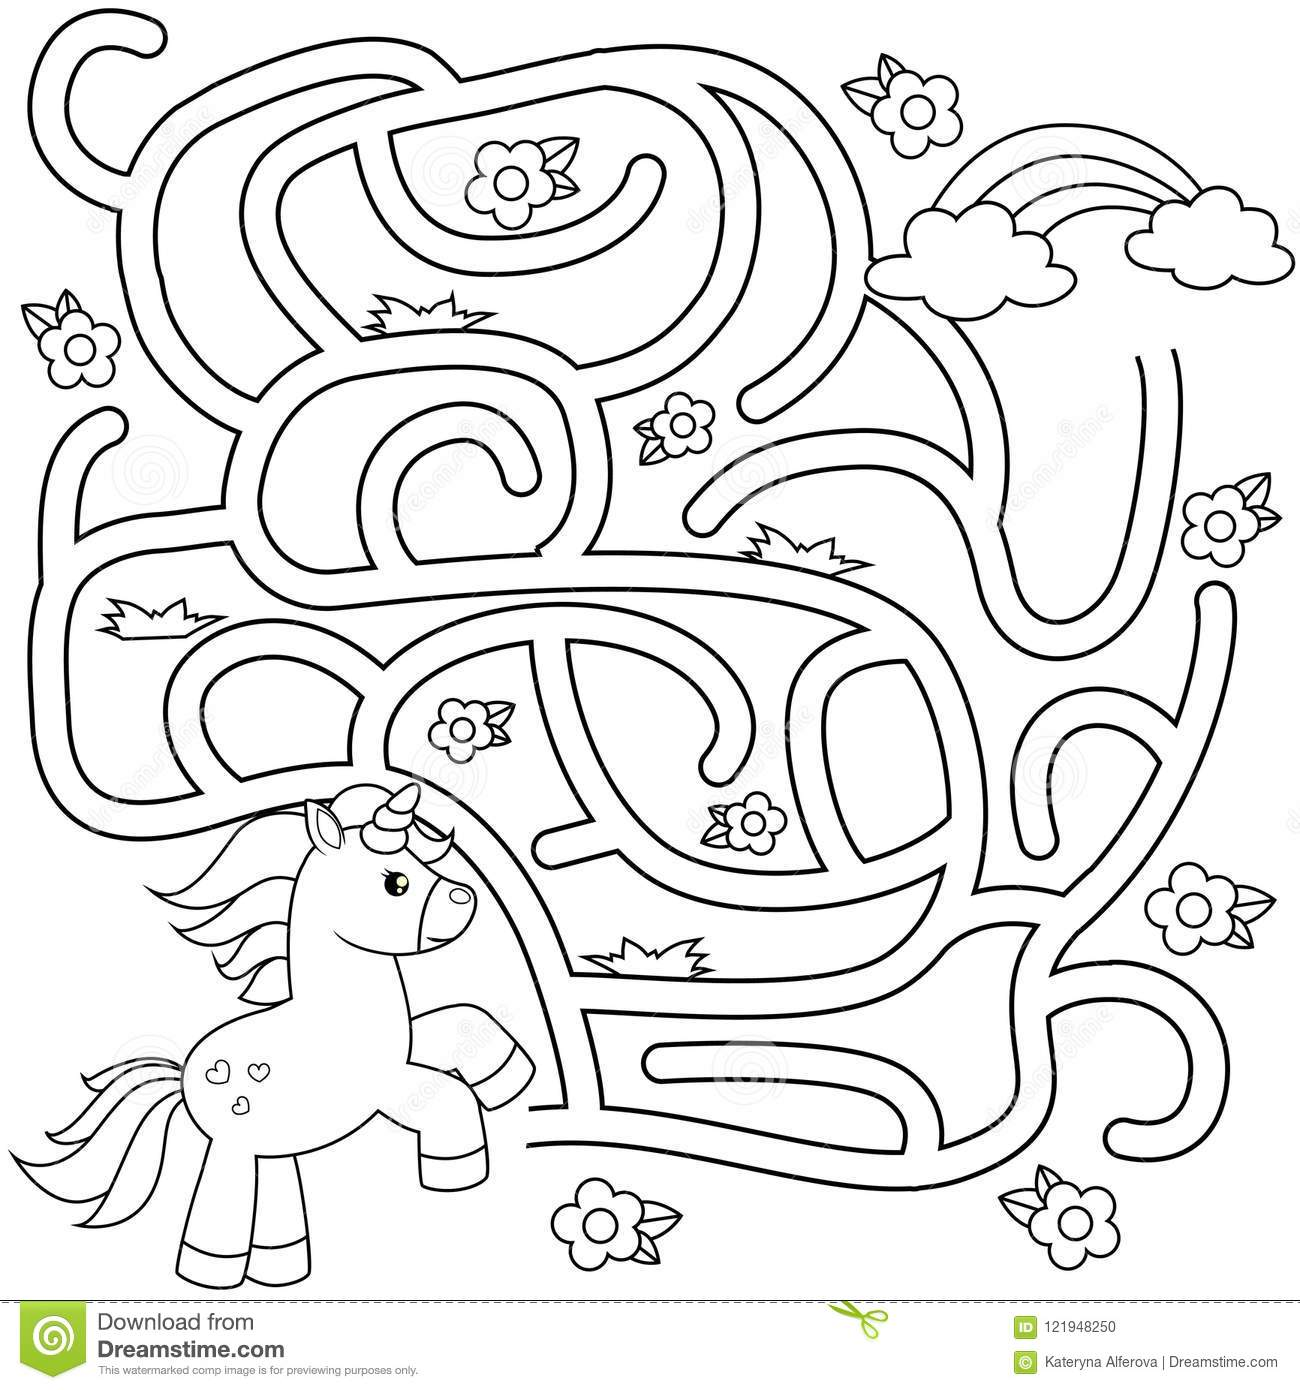 Help Unicorn Find Path To Rainbow. Labyrinth. Maze Game